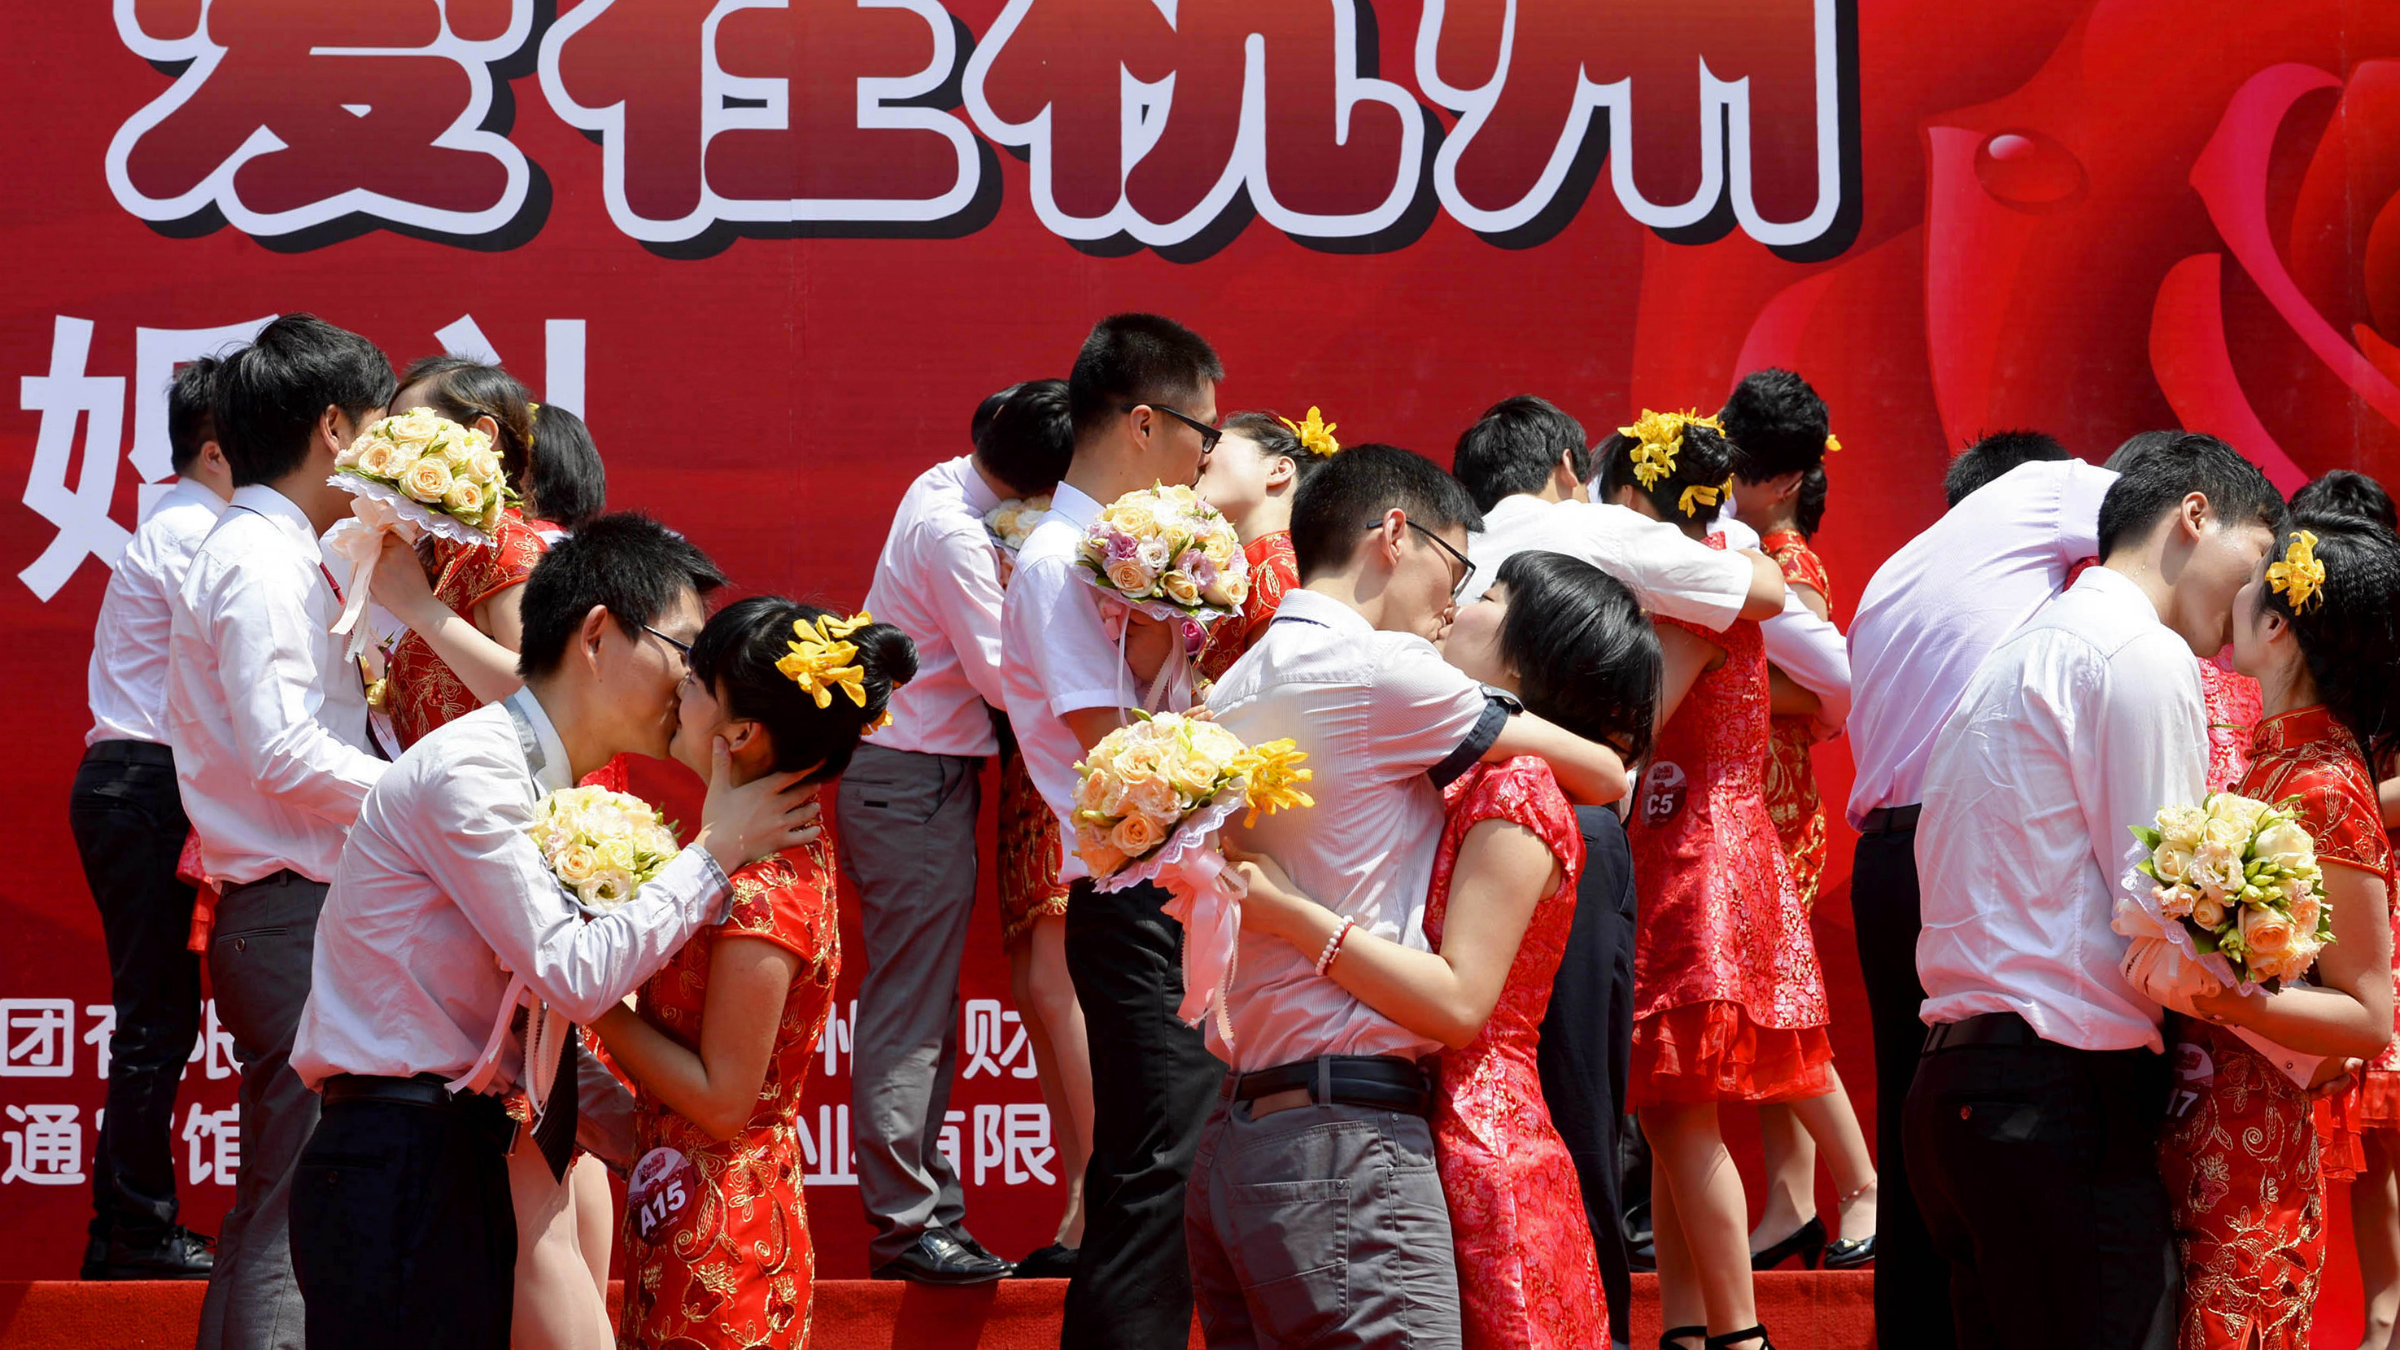 """Couples kiss as they participate in a mass wedding ceremony in Hangzhou, Zhejiang province May 19, 2013. According to local media, a total of 80 couples attended the ceremony on Sunday. The characters collectively read: """"Love in Hangzhou"""". REUTERS/Stringer"""